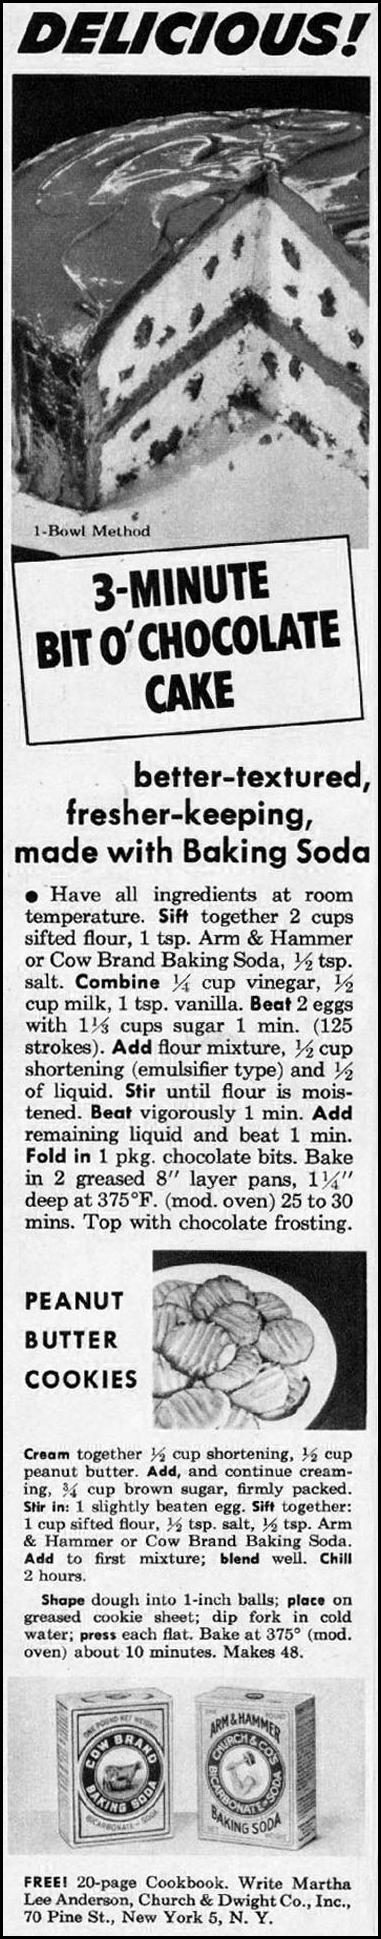 ARM & HAMMER BAKING SODA WOMAN'S HOME COMPANION 12/01/1952 p. 88